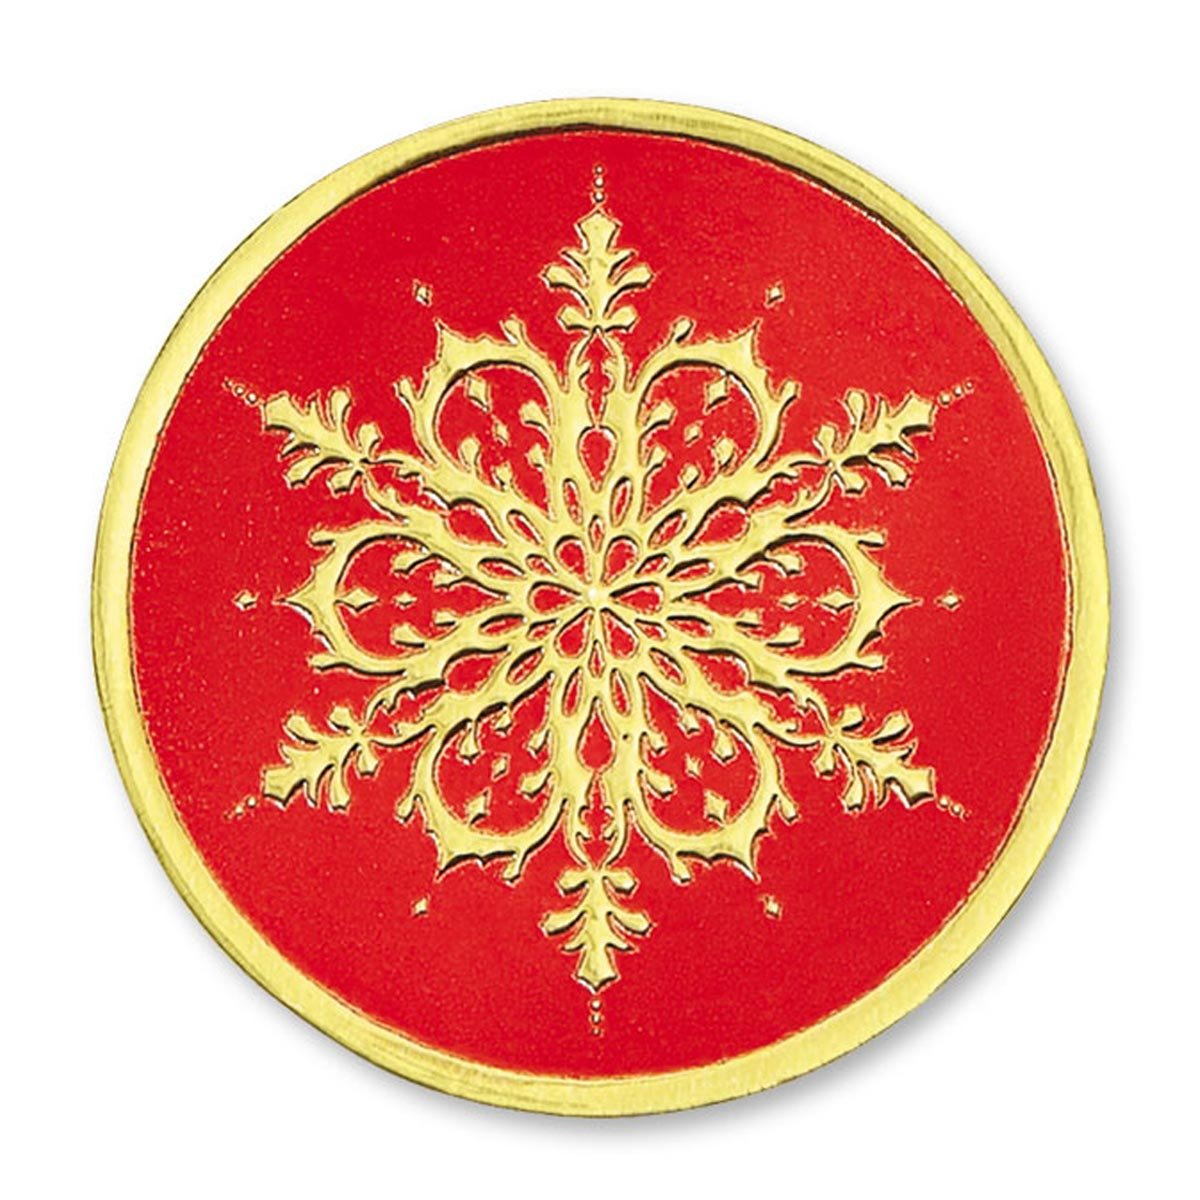 Embossed Elegant Holiday Snowflake Round Gold/Red Foil Seals, 1 ¼ Inches, Self Adhesive, 48 Count